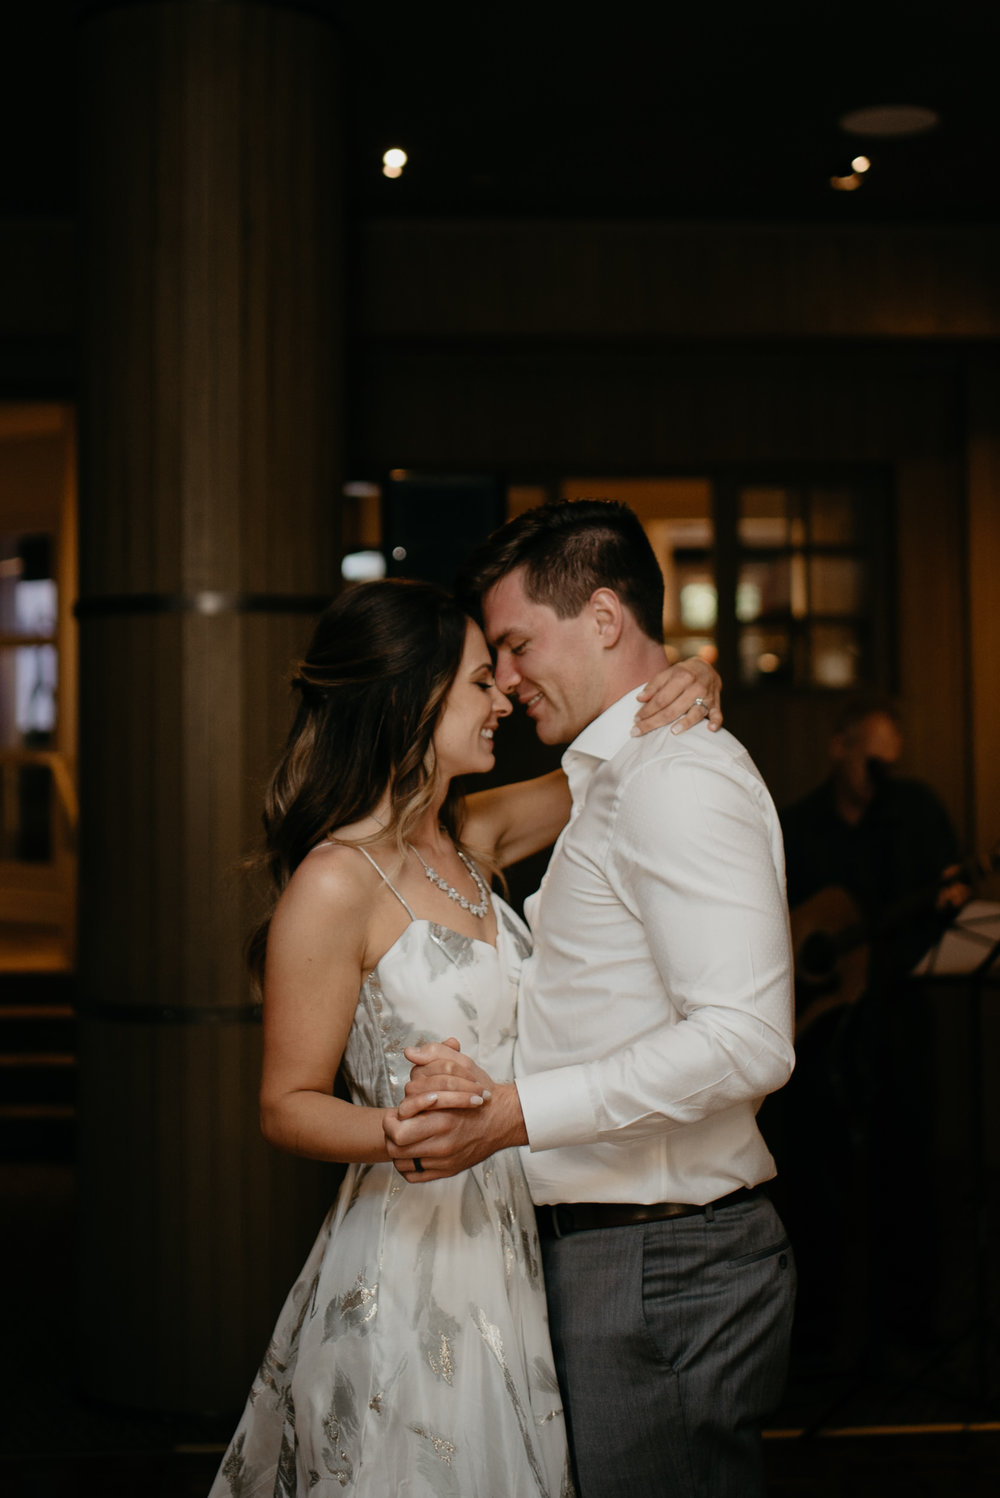 First dance at The Little Nell wedding in Aspen, Colorado. Colorado wedding and elopement photographer.